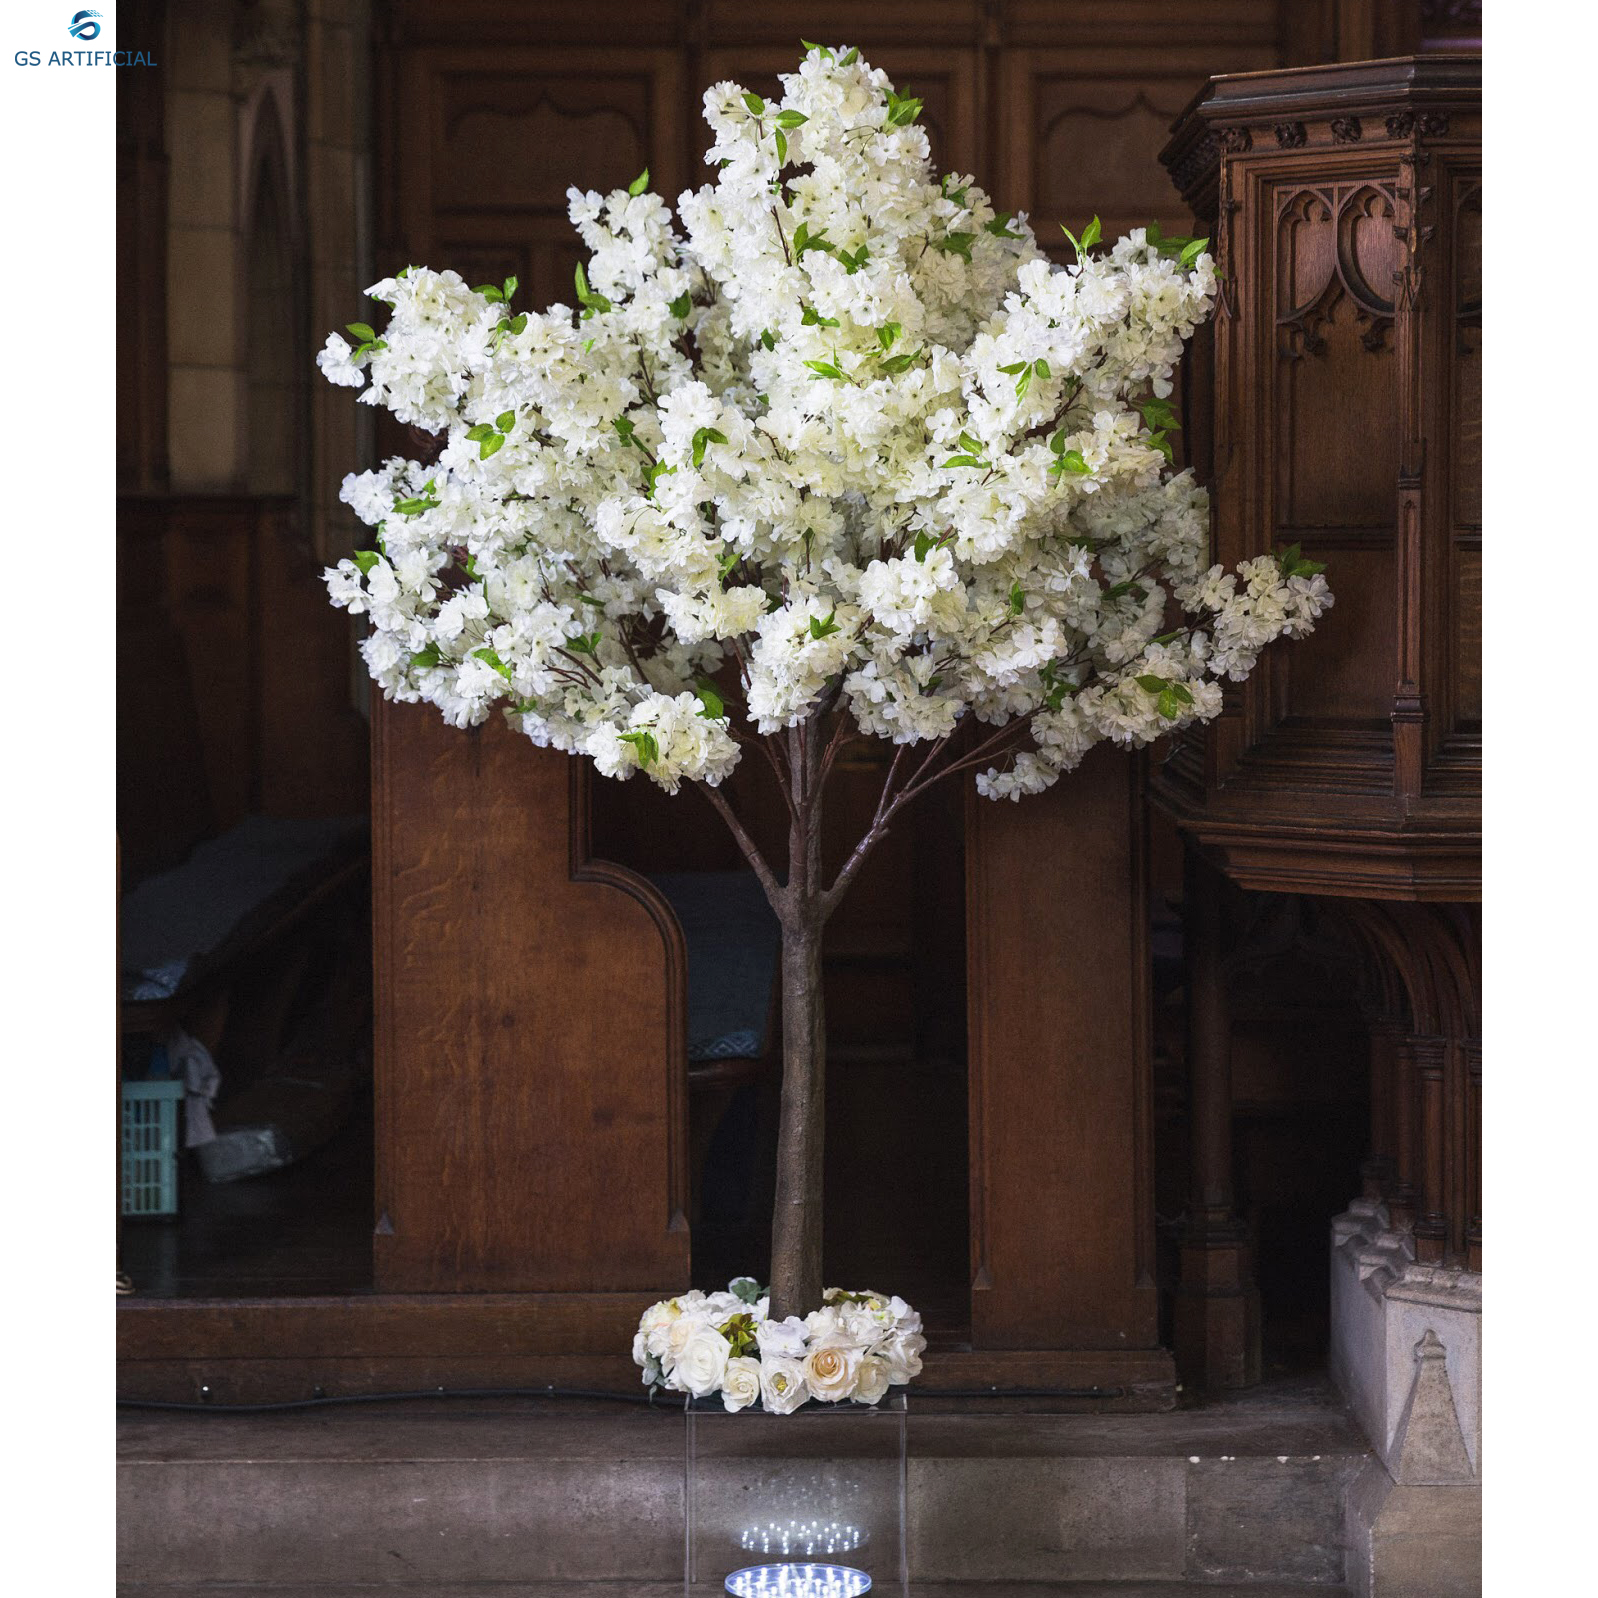 Artificial White Cherry Blossom Trees Small Tree Wedding Centerpieces Buy Artificial White Cherry Blossom Tree Artificial Tree Cherry Blossom Tree Branches Product On Alibaba Com